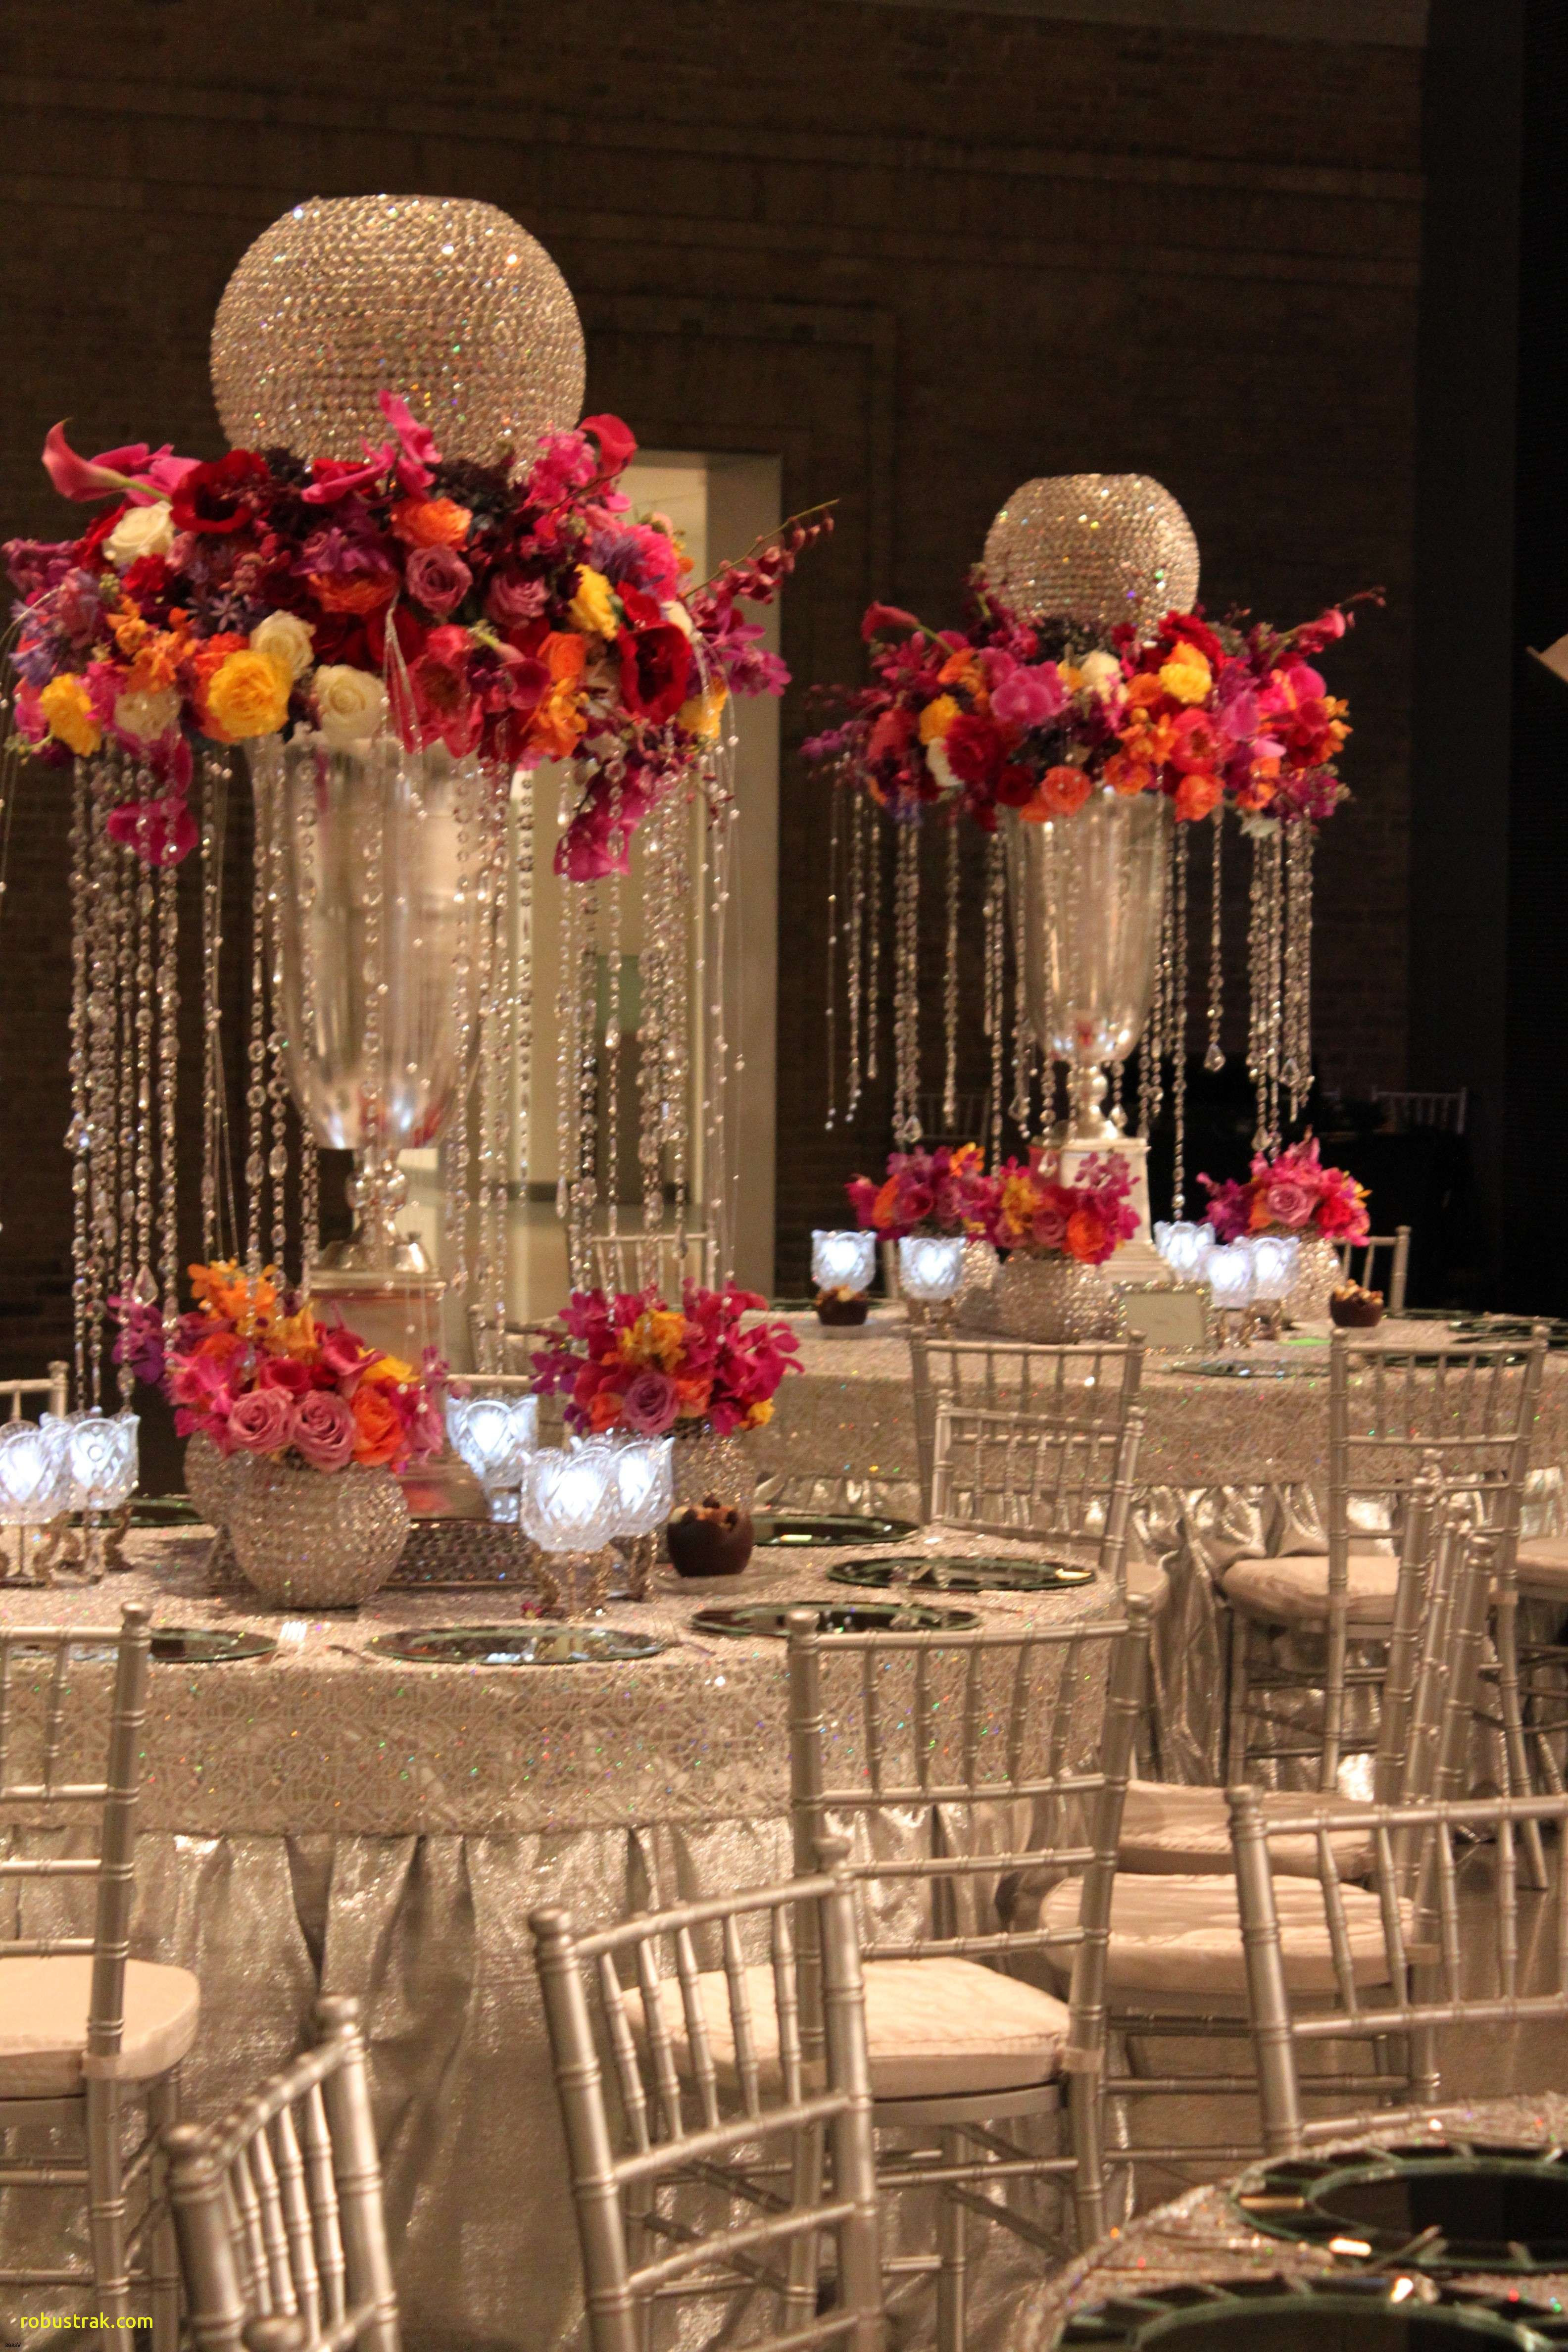 20 tall glass vase of inspirational wedding decorations glass bowls home design ideas in crystal wedding decorations inspirational vases tall crystal wedding scheme where to buy wedding decorations